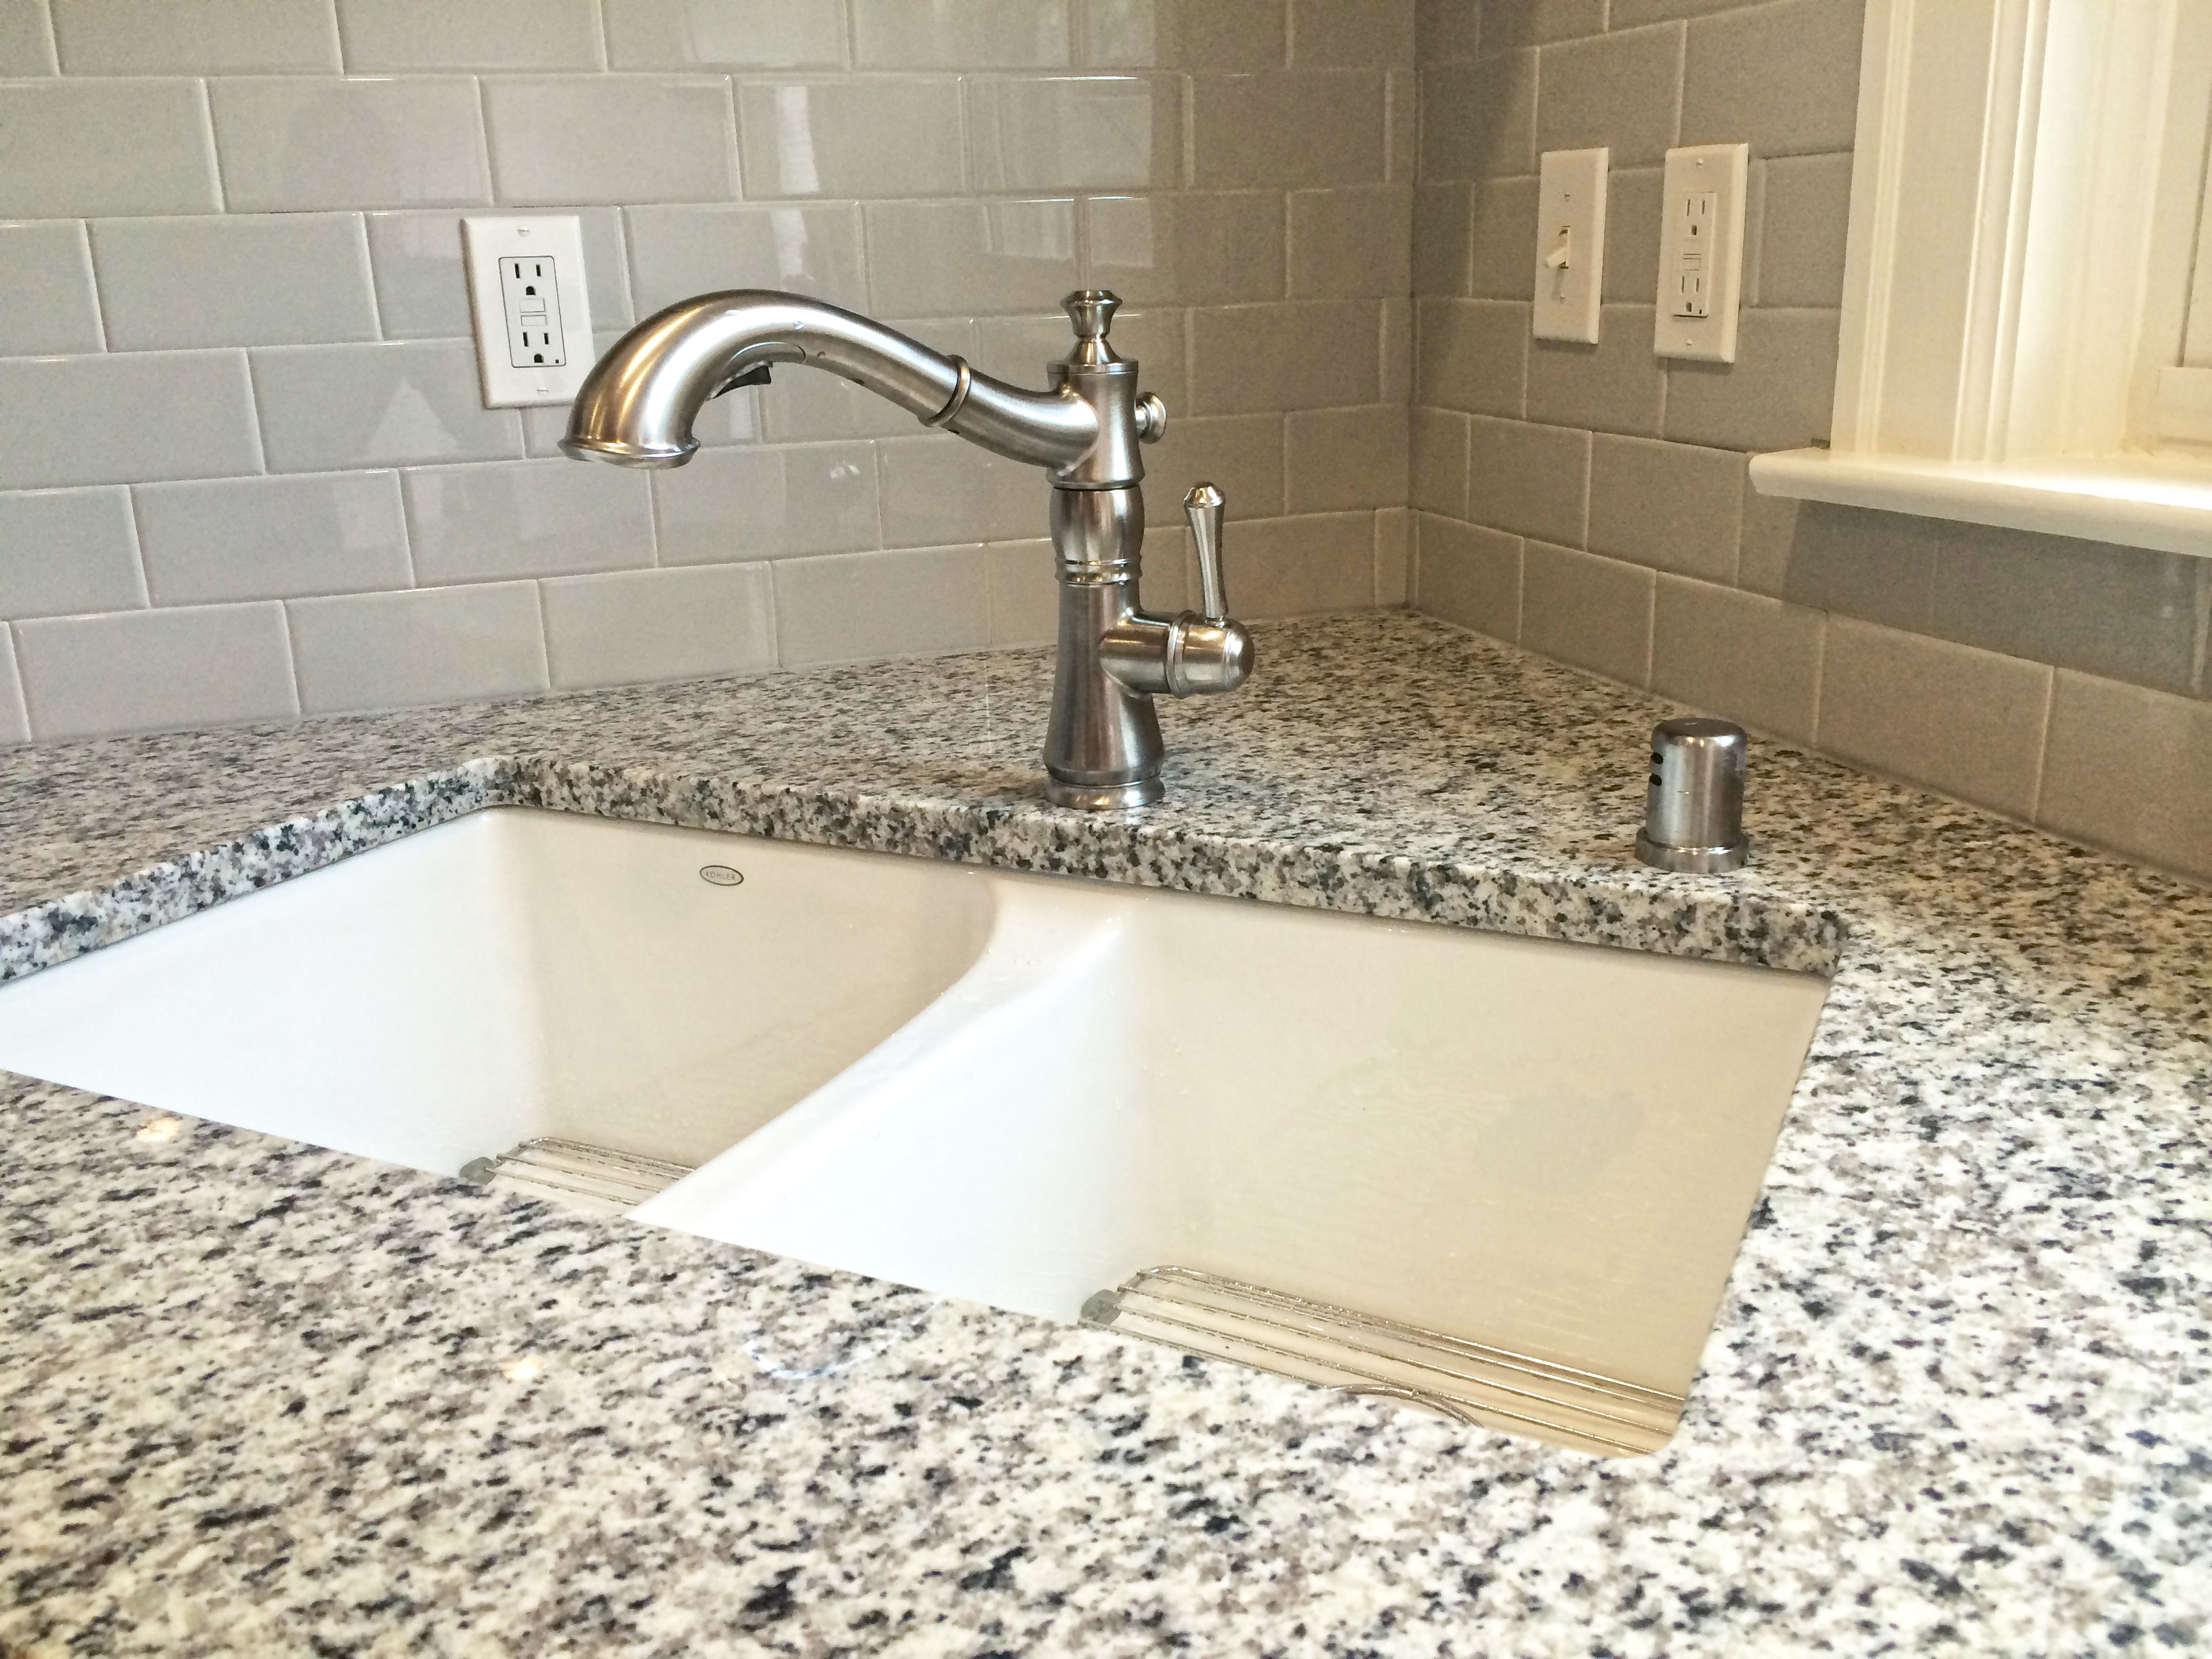 Luna Pearl Granite : White cast iron sink luna pearl granite desert gray